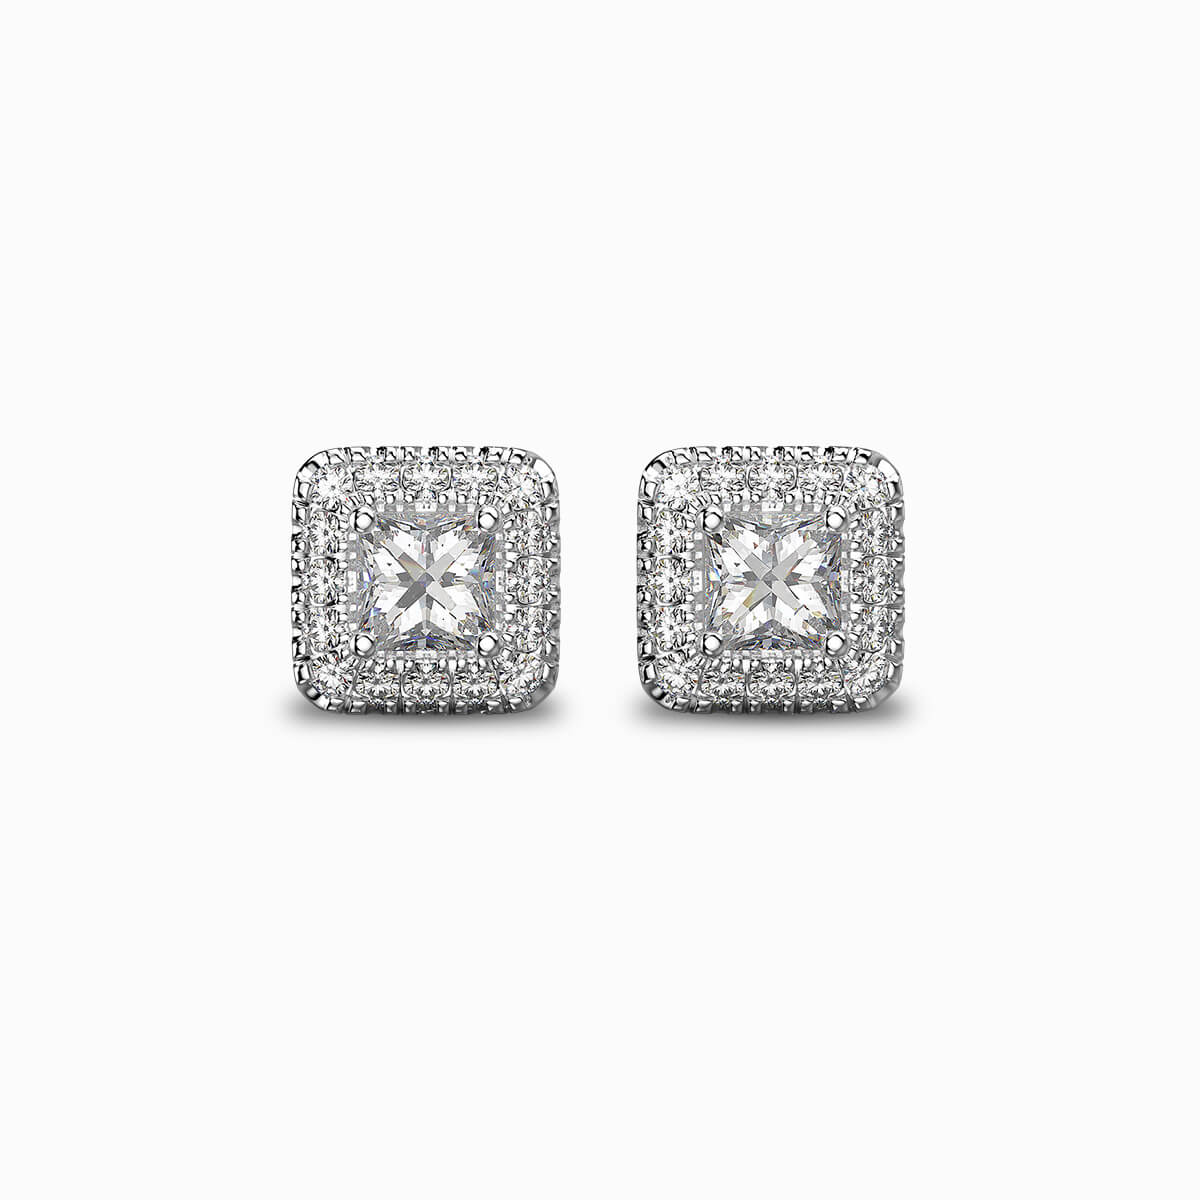 My Girl Halo Earrings in Platinum Set With Diamonds